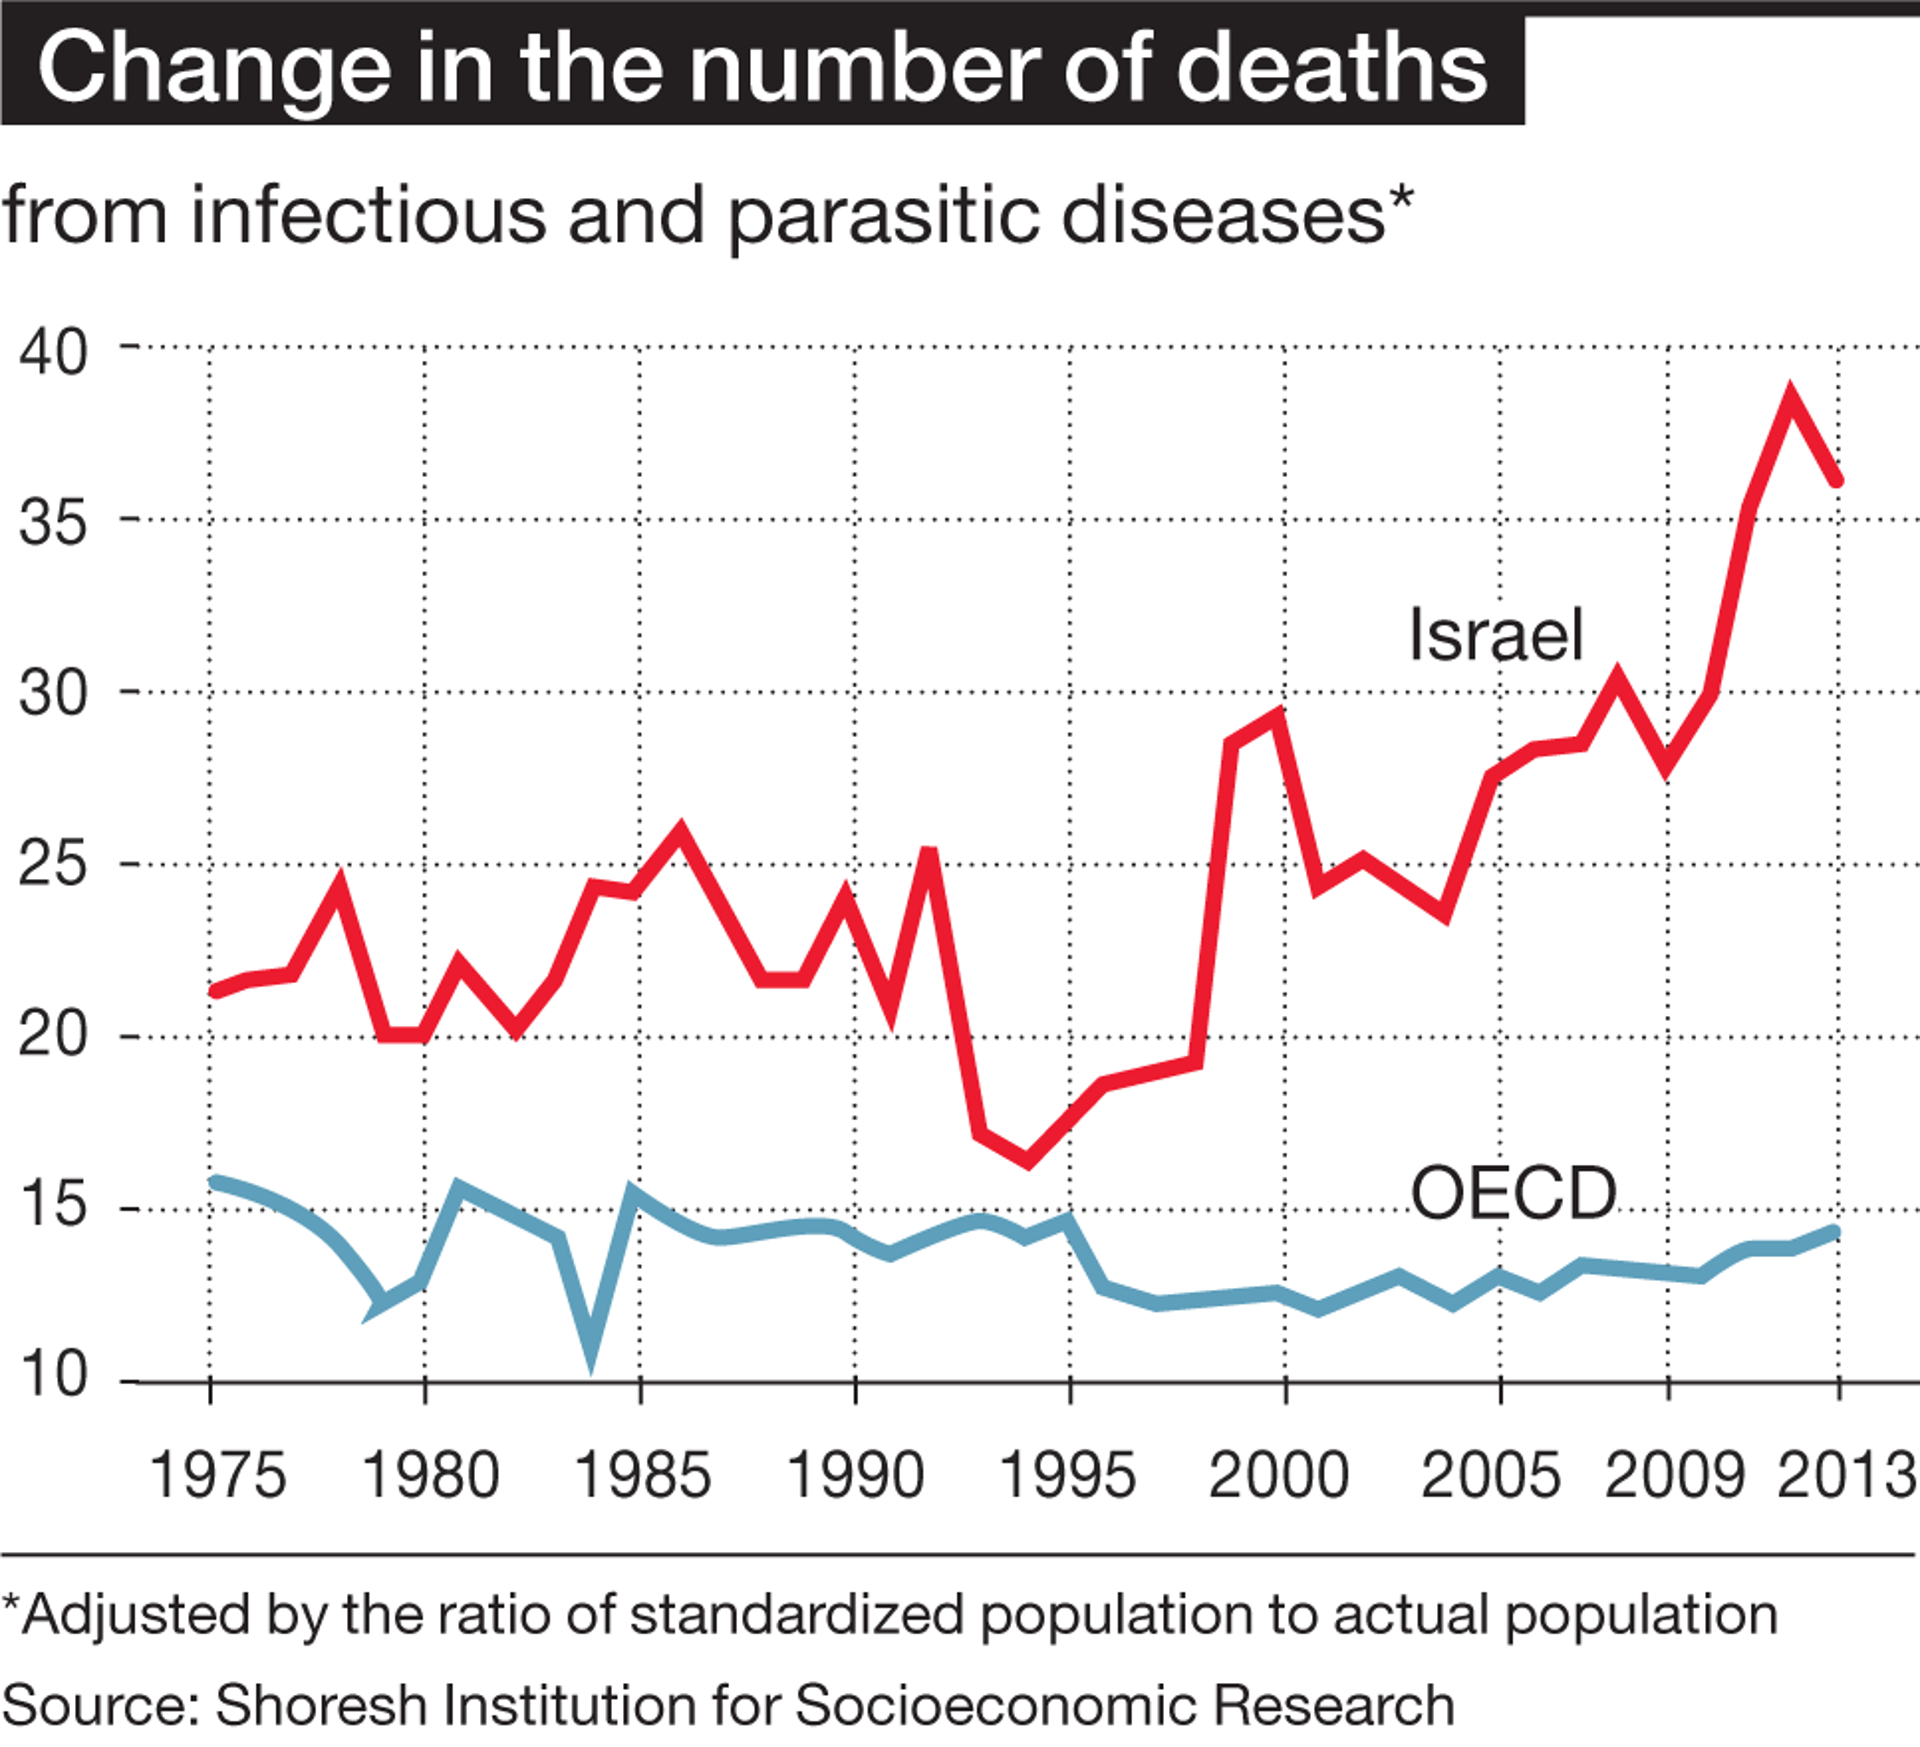 Change in number of deaths graph